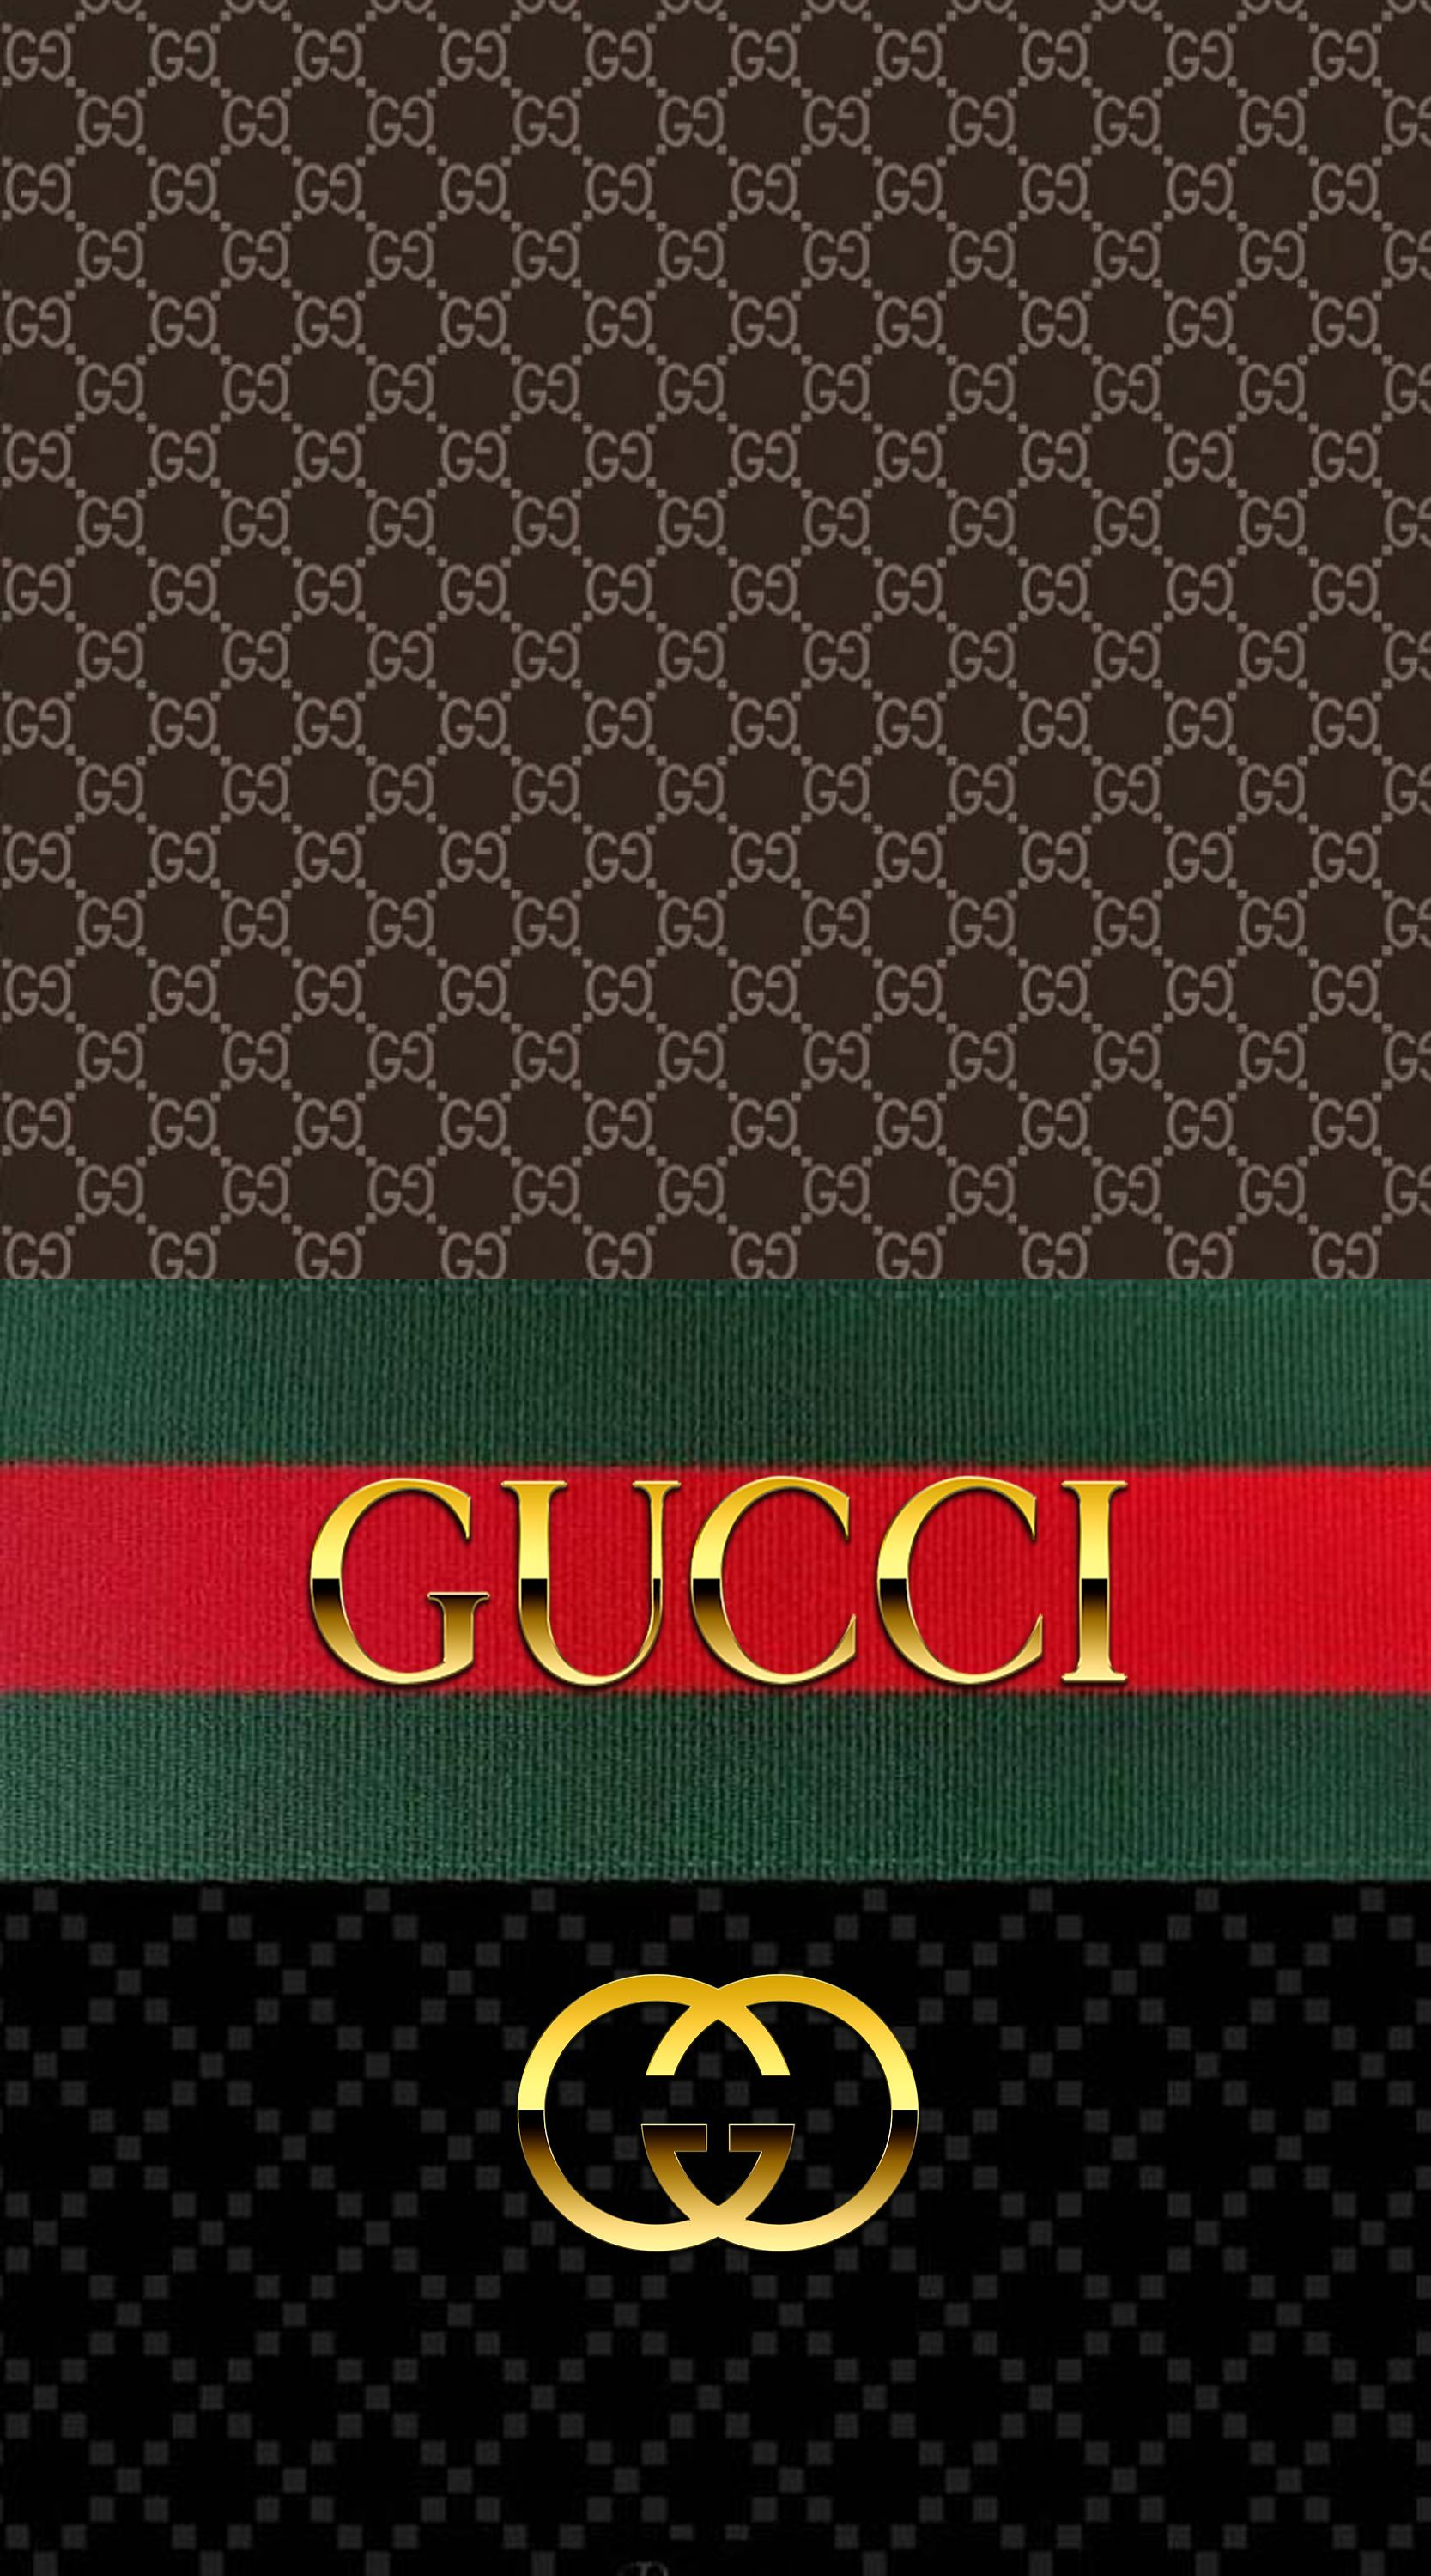 Https Www Ecrater Com P 33805395 Iphone Xs Max X Xr 6 6s Keywords Gucci Iphone Cas In 2020 Gucci Wallpaper Iphone Download Cute Wallpapers Aesthetic Iphone Wallpaper